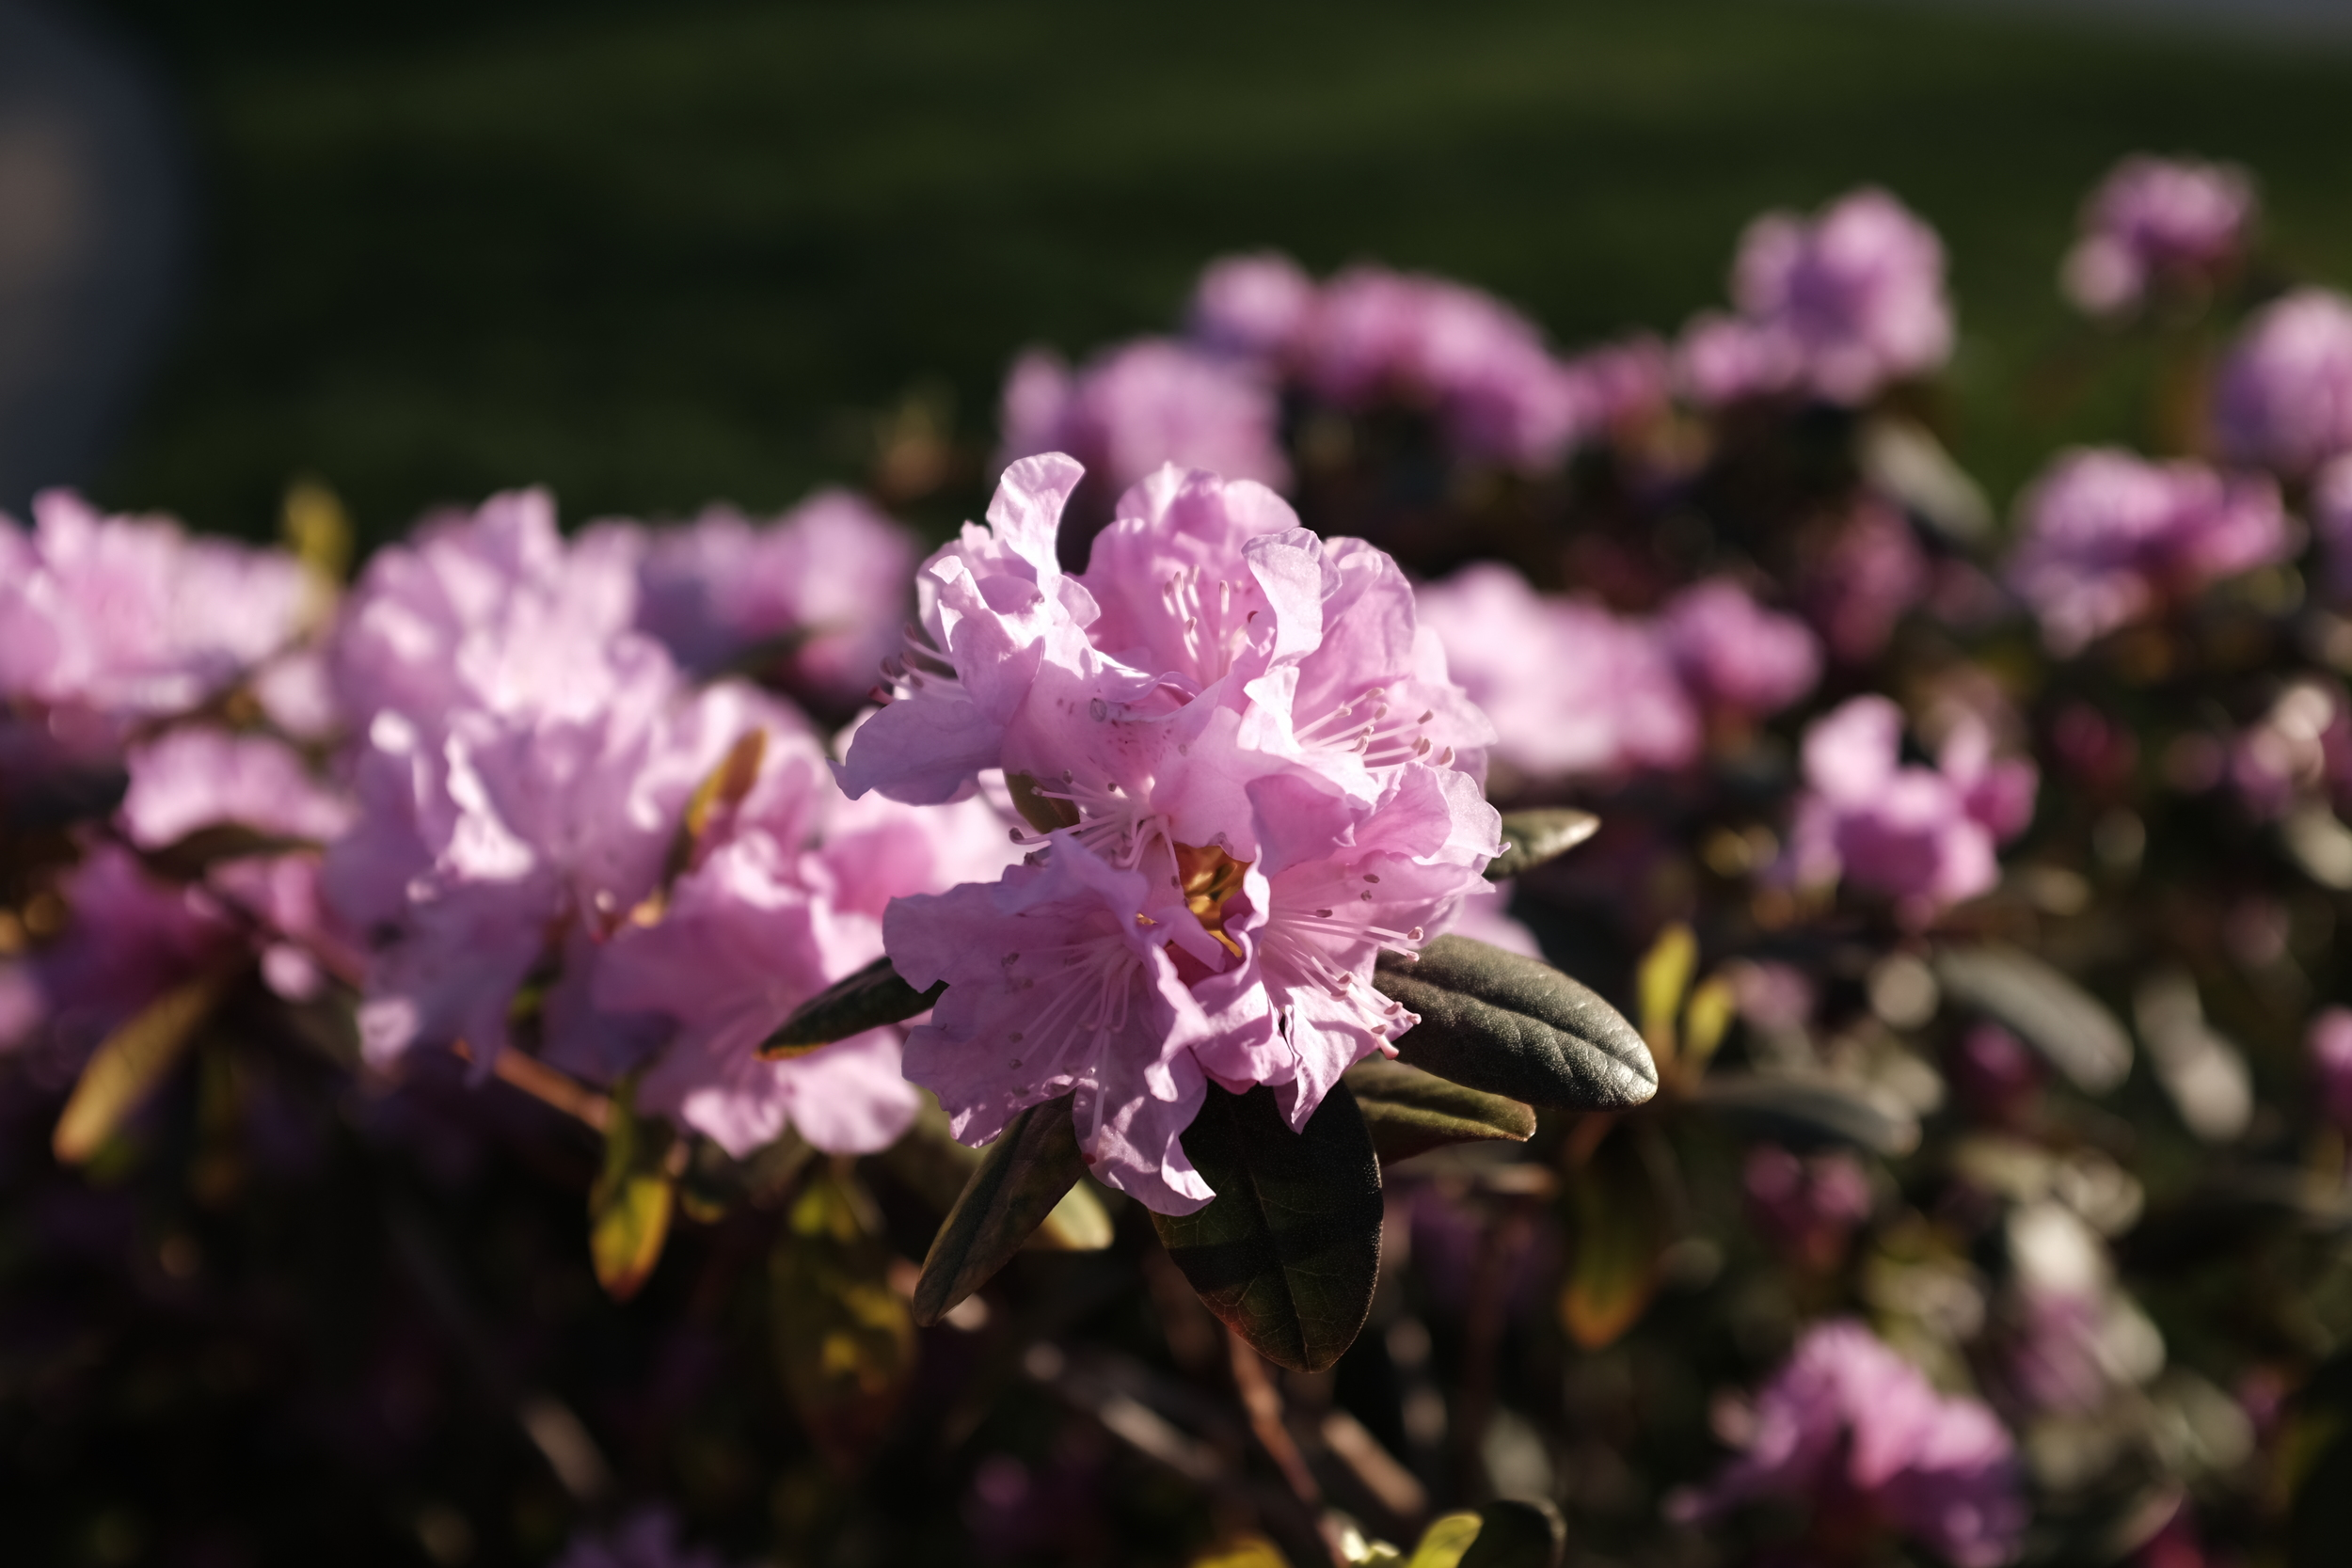 Used the macro option at F2 on these spring flowers. Beautiful bokeh.